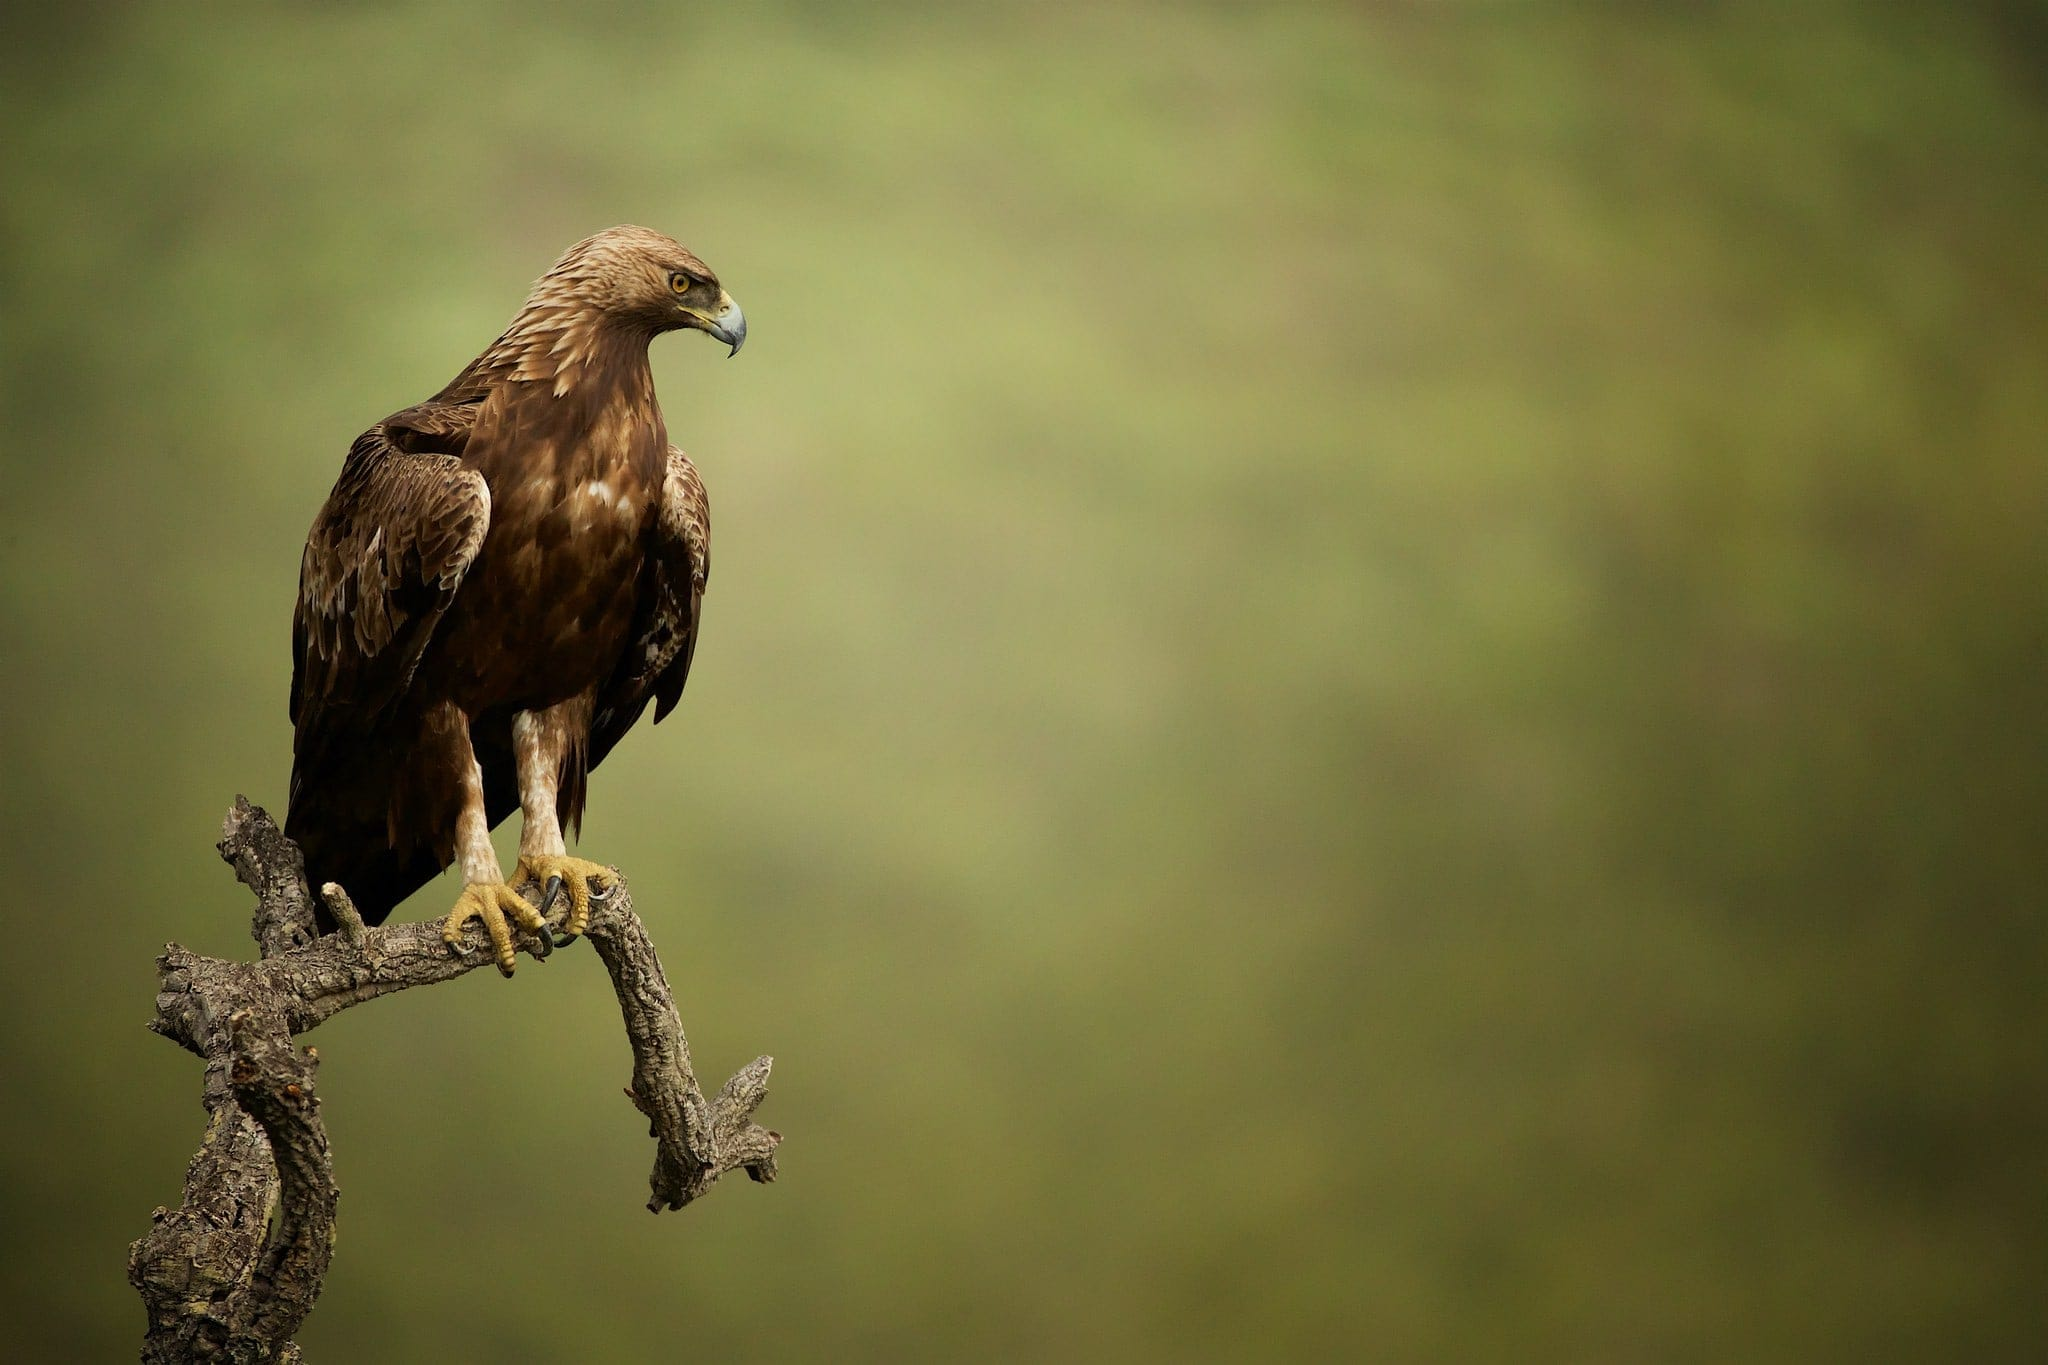 One Of The Magnificent Golden Eagles Perched On A Tree Overlooking The Estate Below   Photographed On The Estate Used For The NaturesLens Eagles Of Extremadura Photography Holiday.jpg